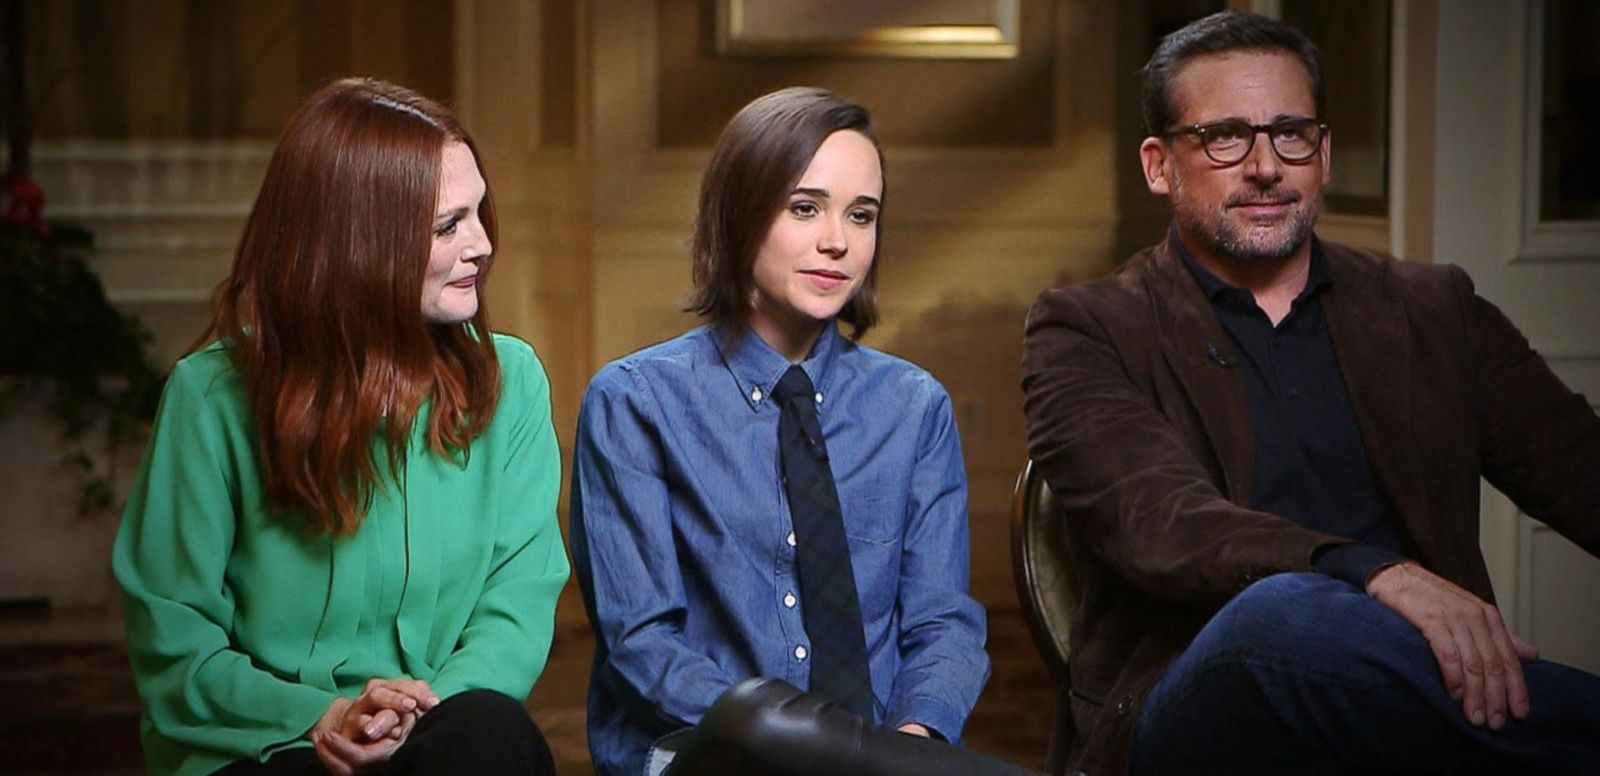 VIDEO: The Superstar Cast of 'Freeheld' Opens Up on the New Film